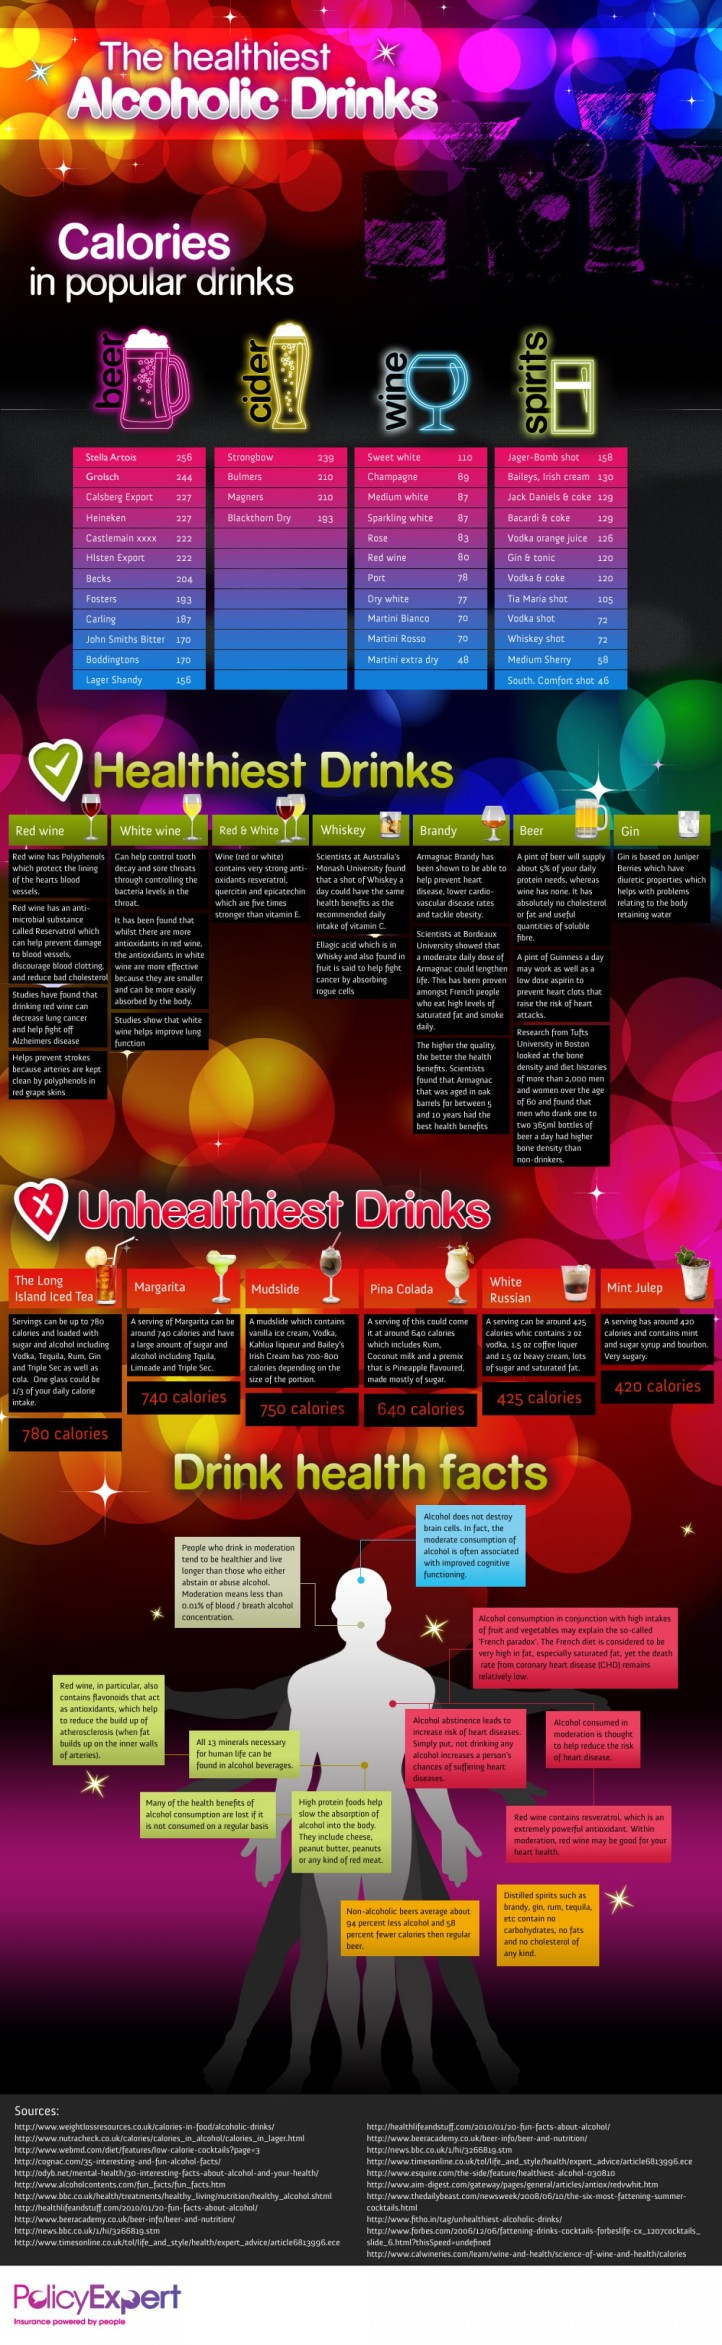 the-healthiest-alcoholic-drinks_50c094fd9e22c_w1500